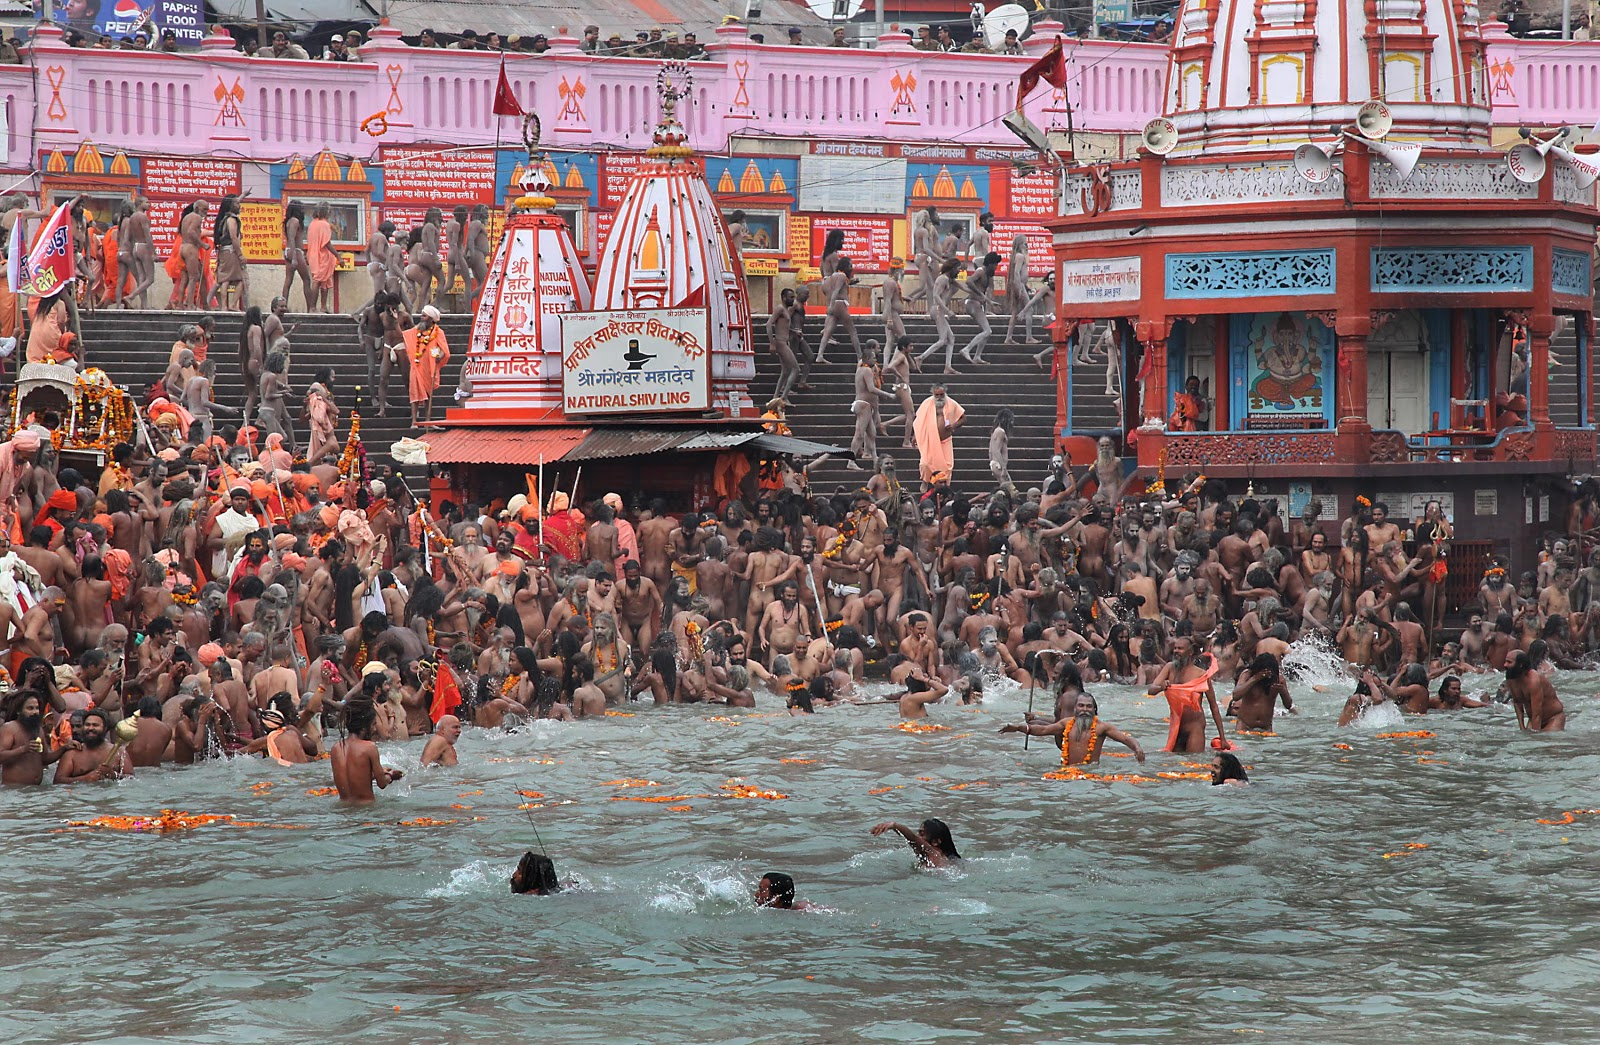 kumbh mela Kumbh mela destination consecrated by the falling of the drop of ambrosia from heaven, the four kumbh mela destinations of allahabad, haridwar, ujjain, and nashik are situated on the banks of sacred rivers interwoven with kumbh mela history, these sacred destinations hold great importance in hinduism as it is.